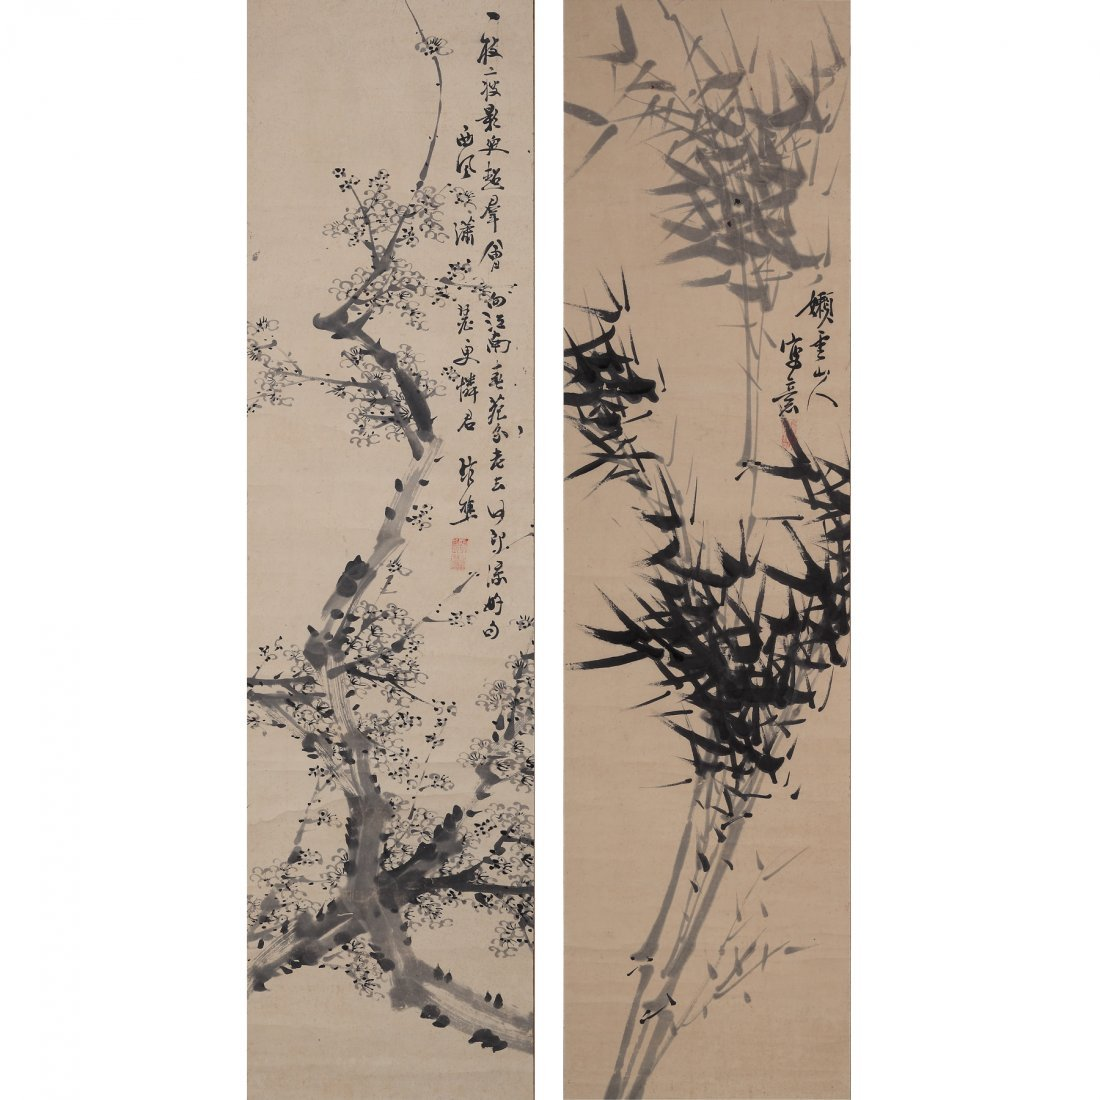 BAMBOO AND PLUM BLOSSOMS BY XIE GUANQIAO (1811-1864)